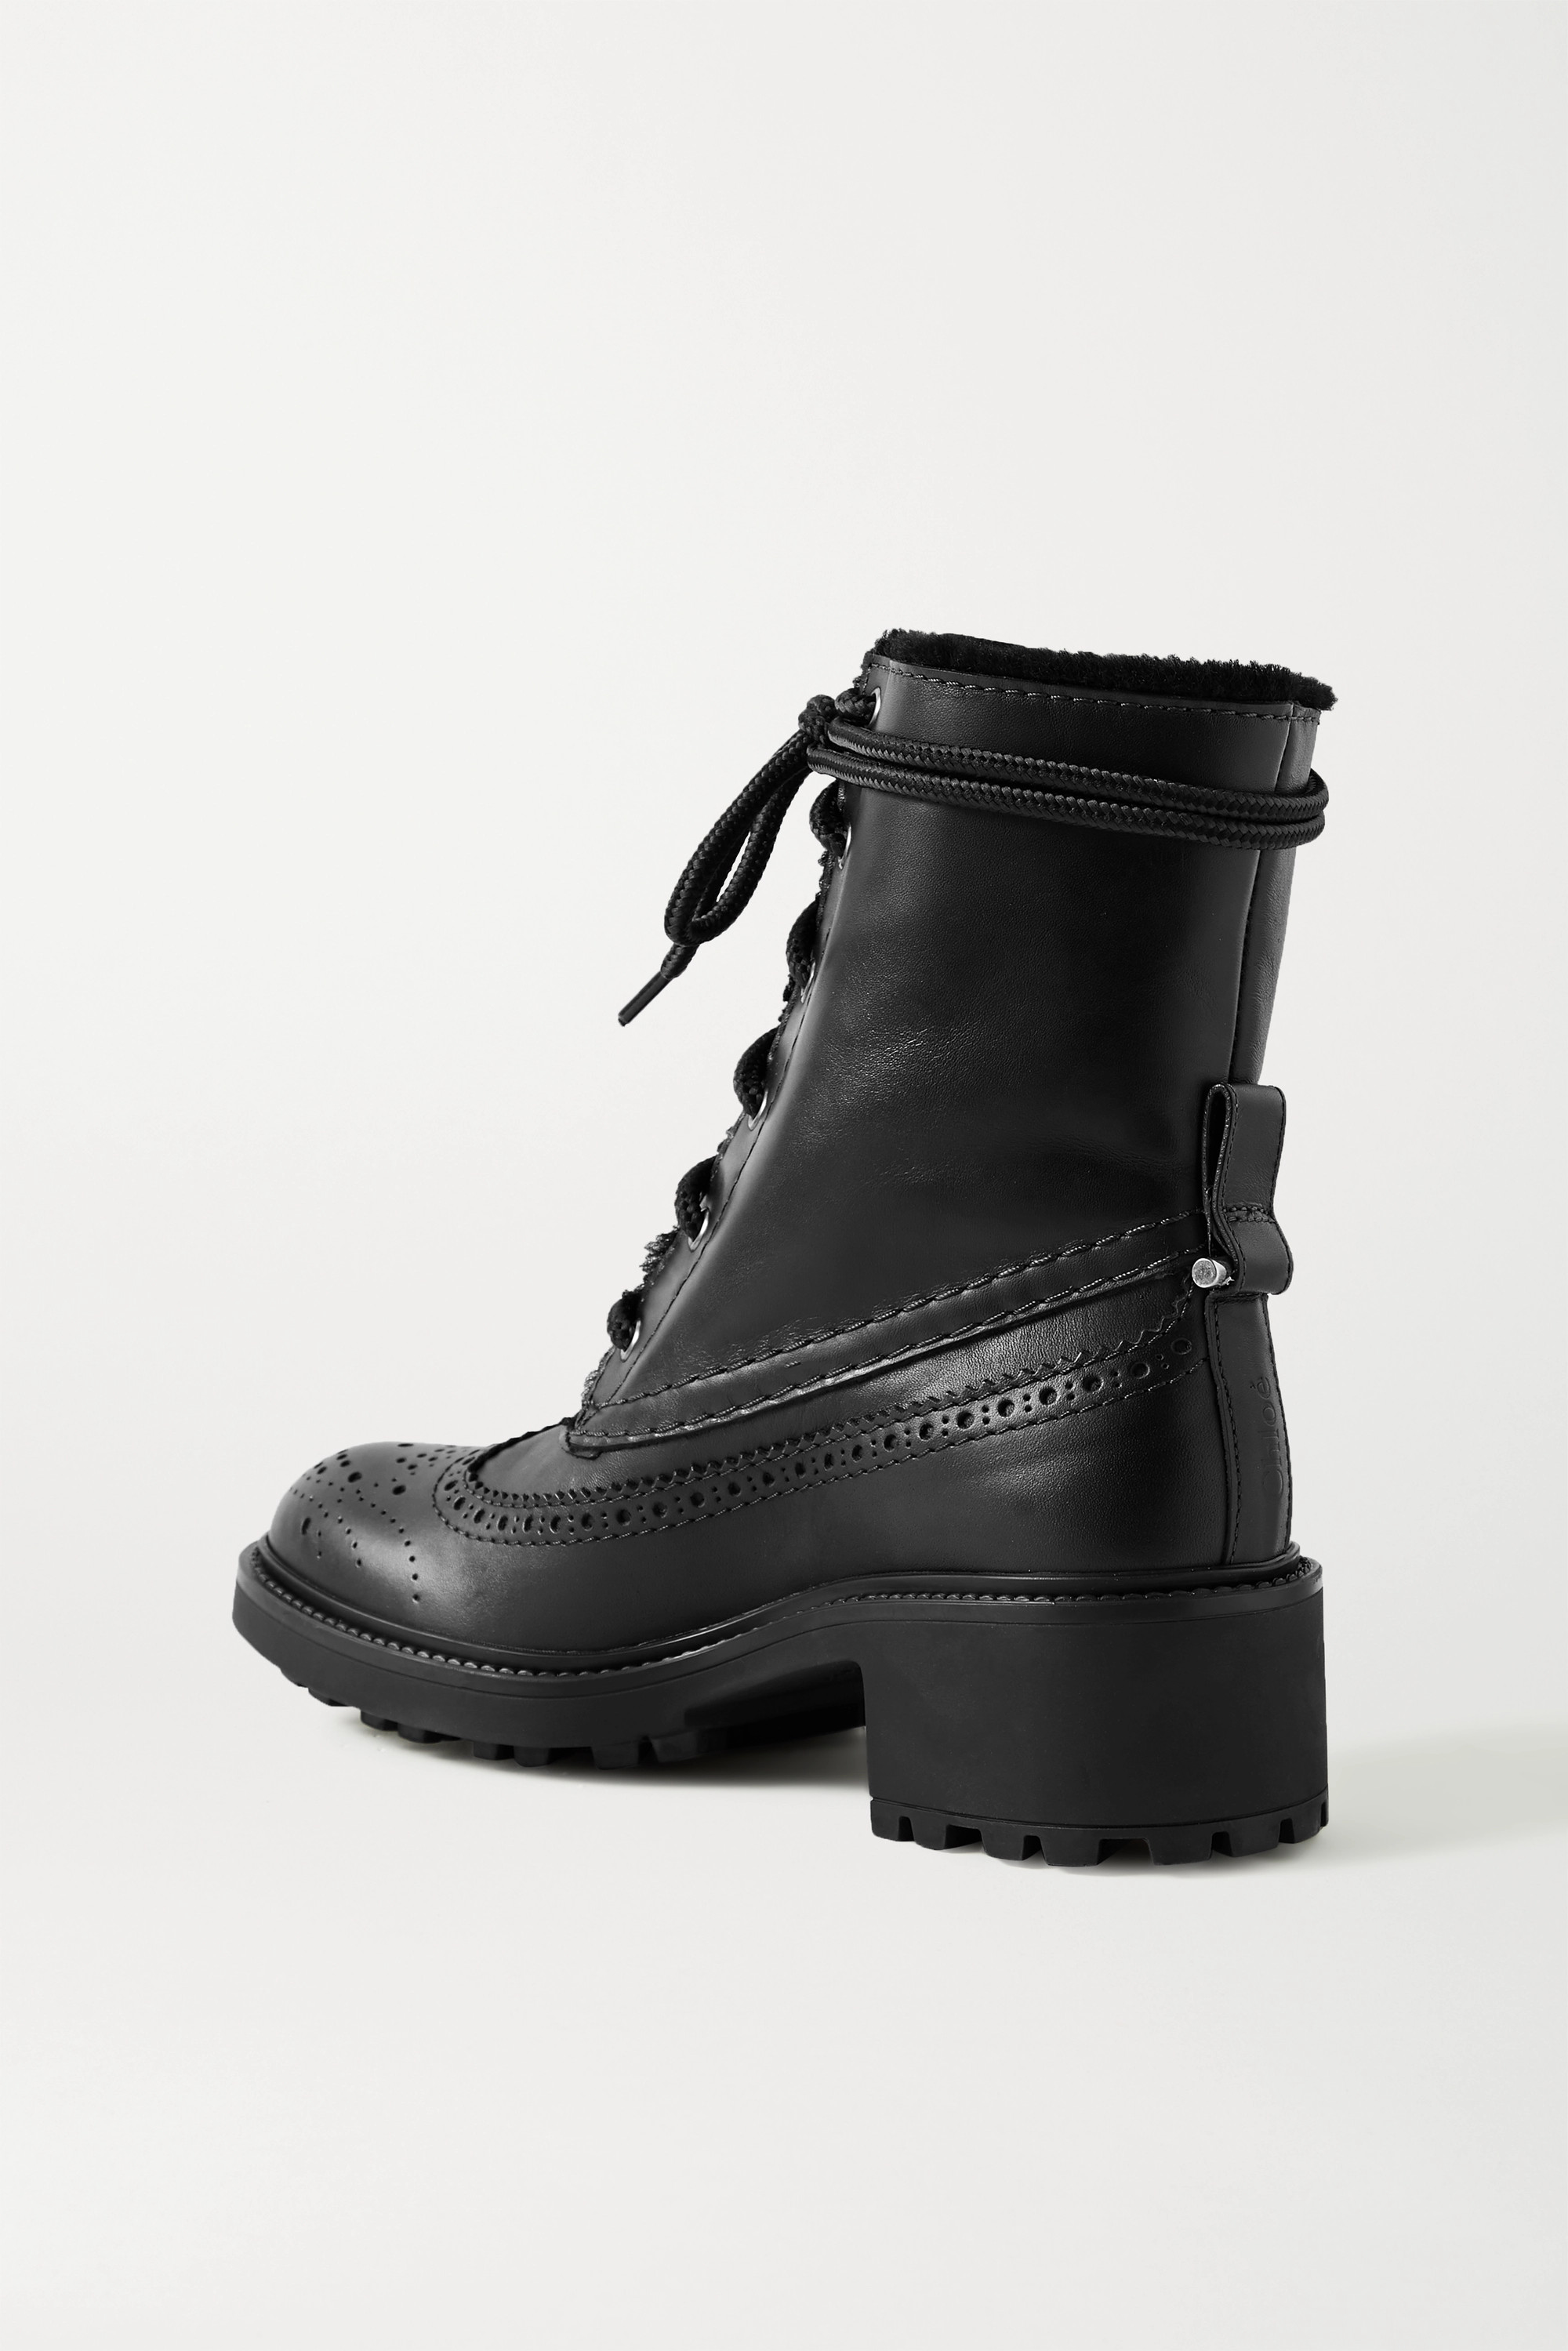 Chloé Franne shearling-lined leather ankle boots